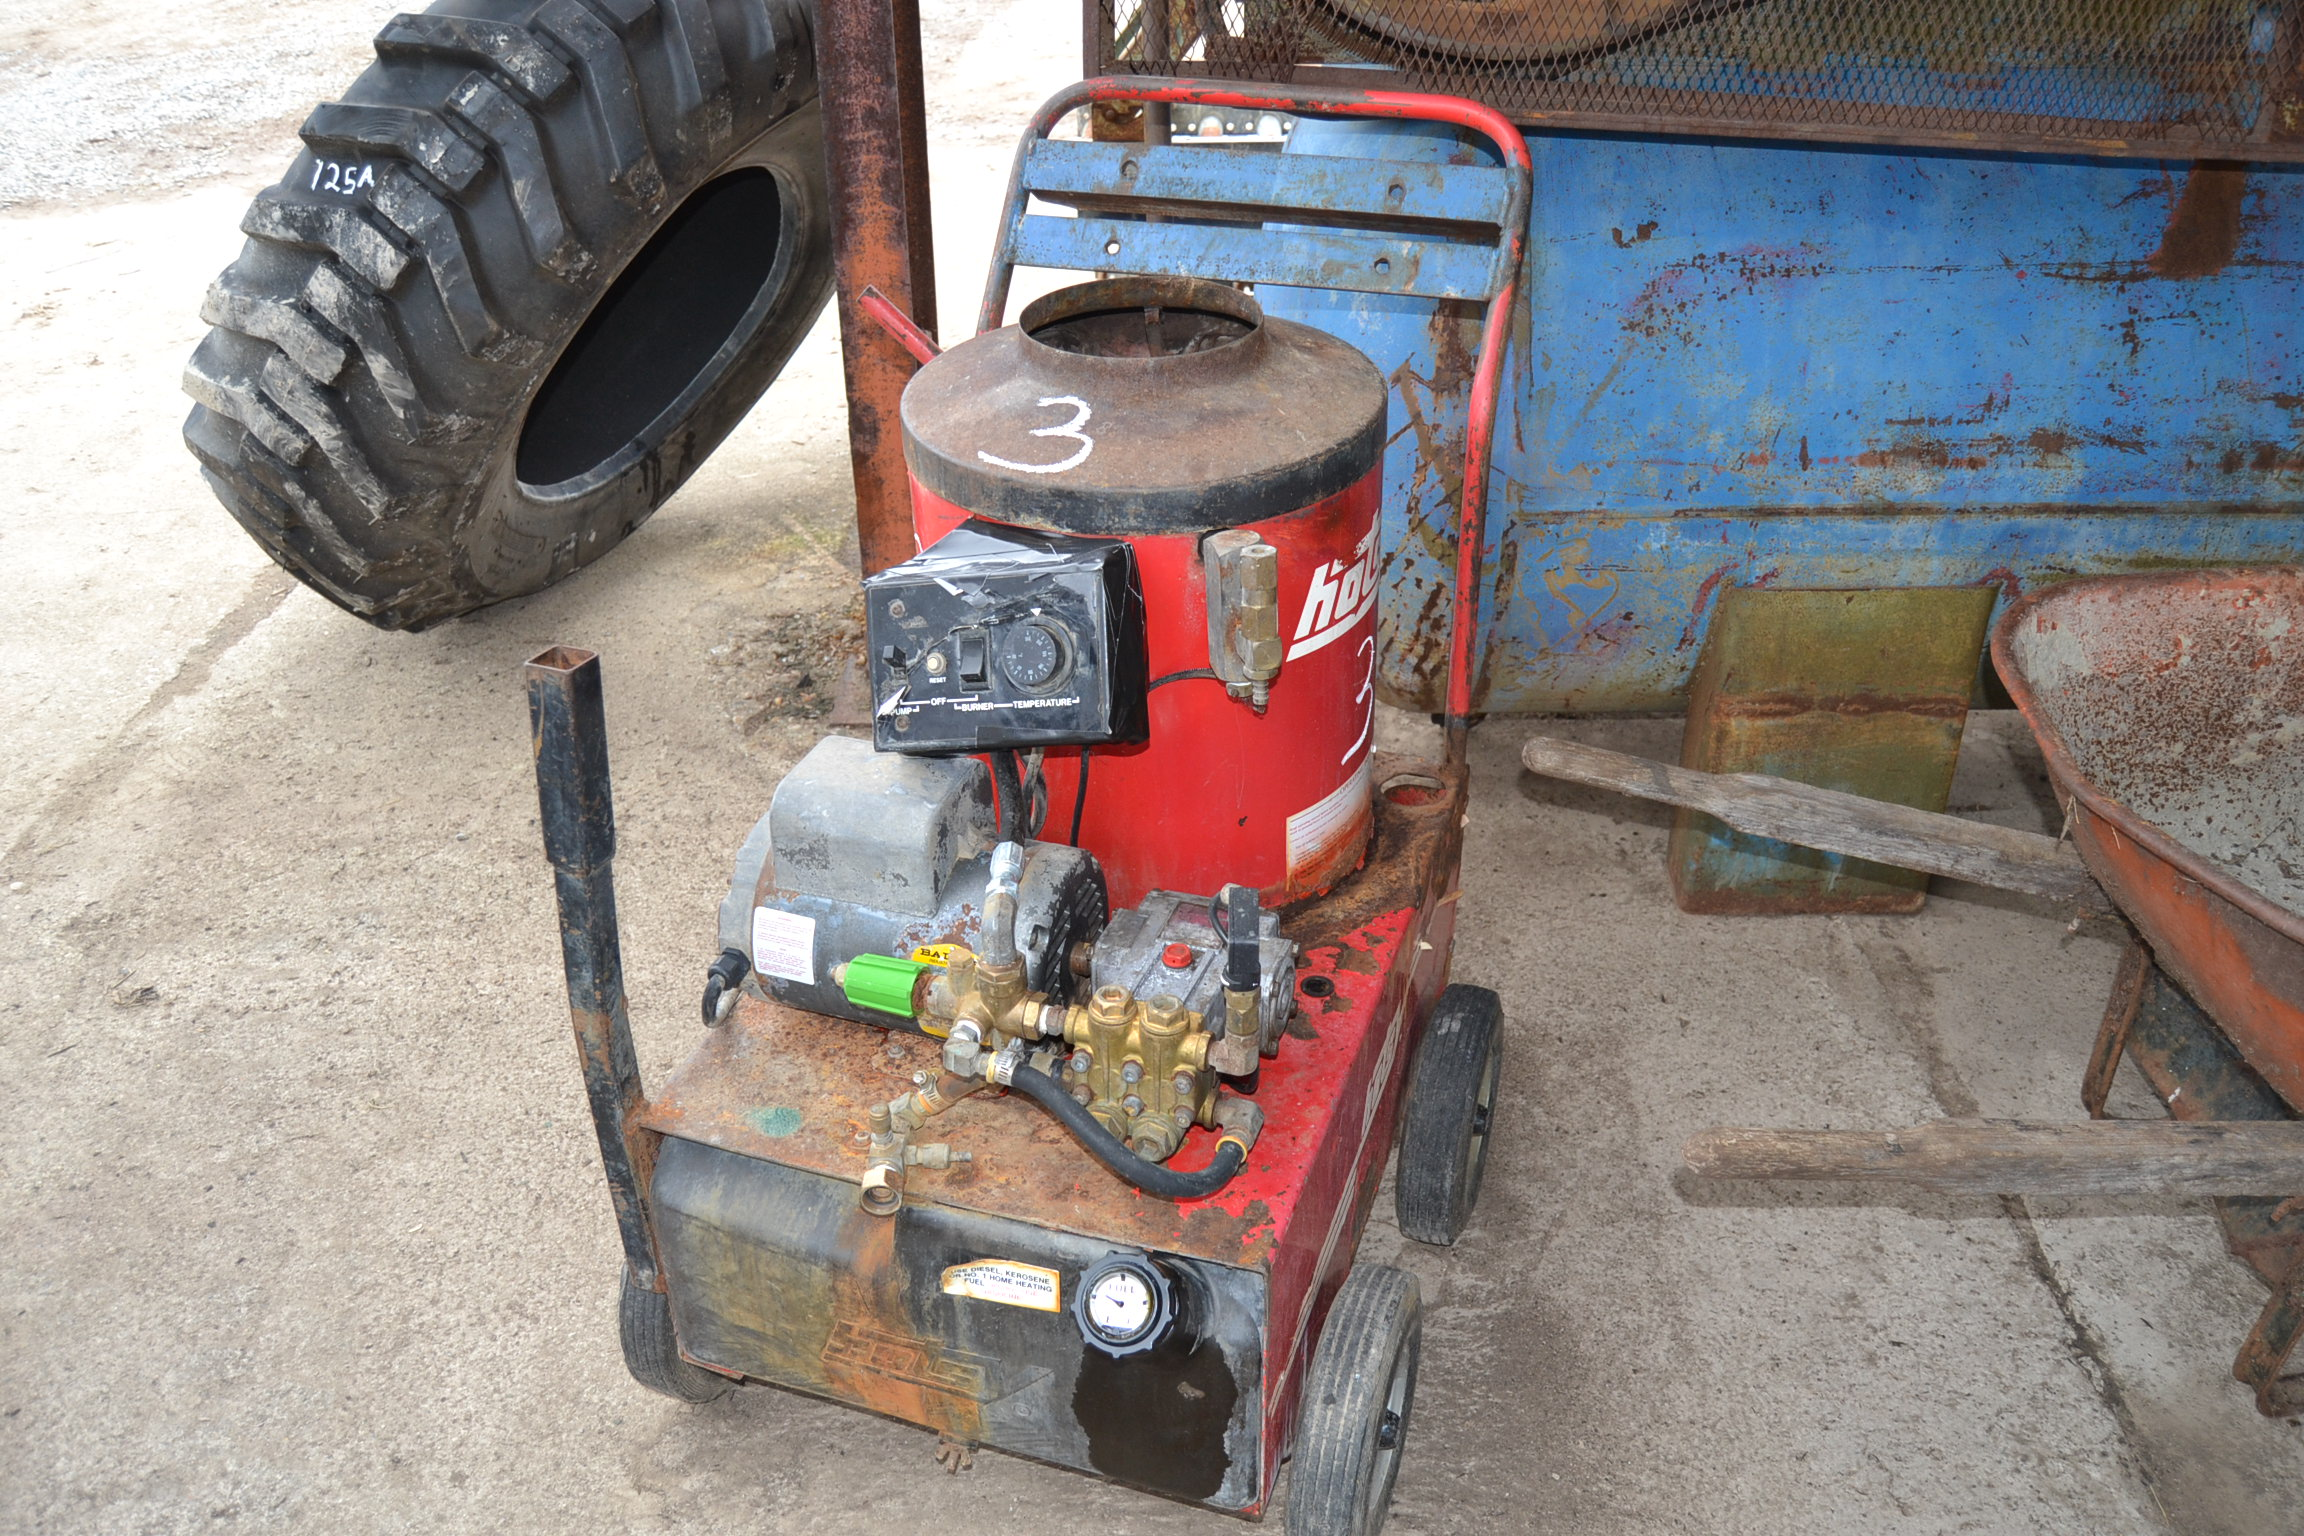 Lot 3 - HOTSY ELECTRIC PRESSURE WASHER